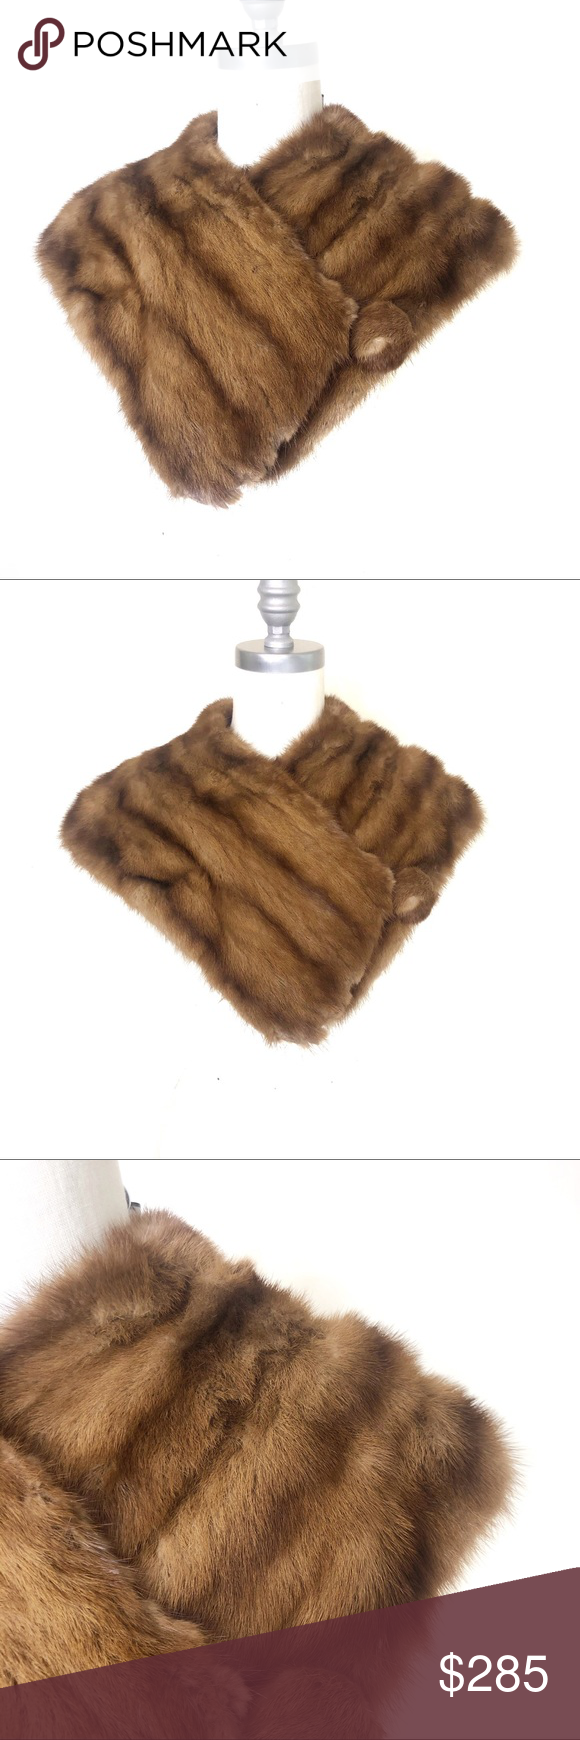 Vintage Mollie Entwistle 50s/60s Fur Stole Collar This is an absolutely beautifu...#50s60s #absolutely #beautifu #collar #entwistle #für #mollie #stole #vintage